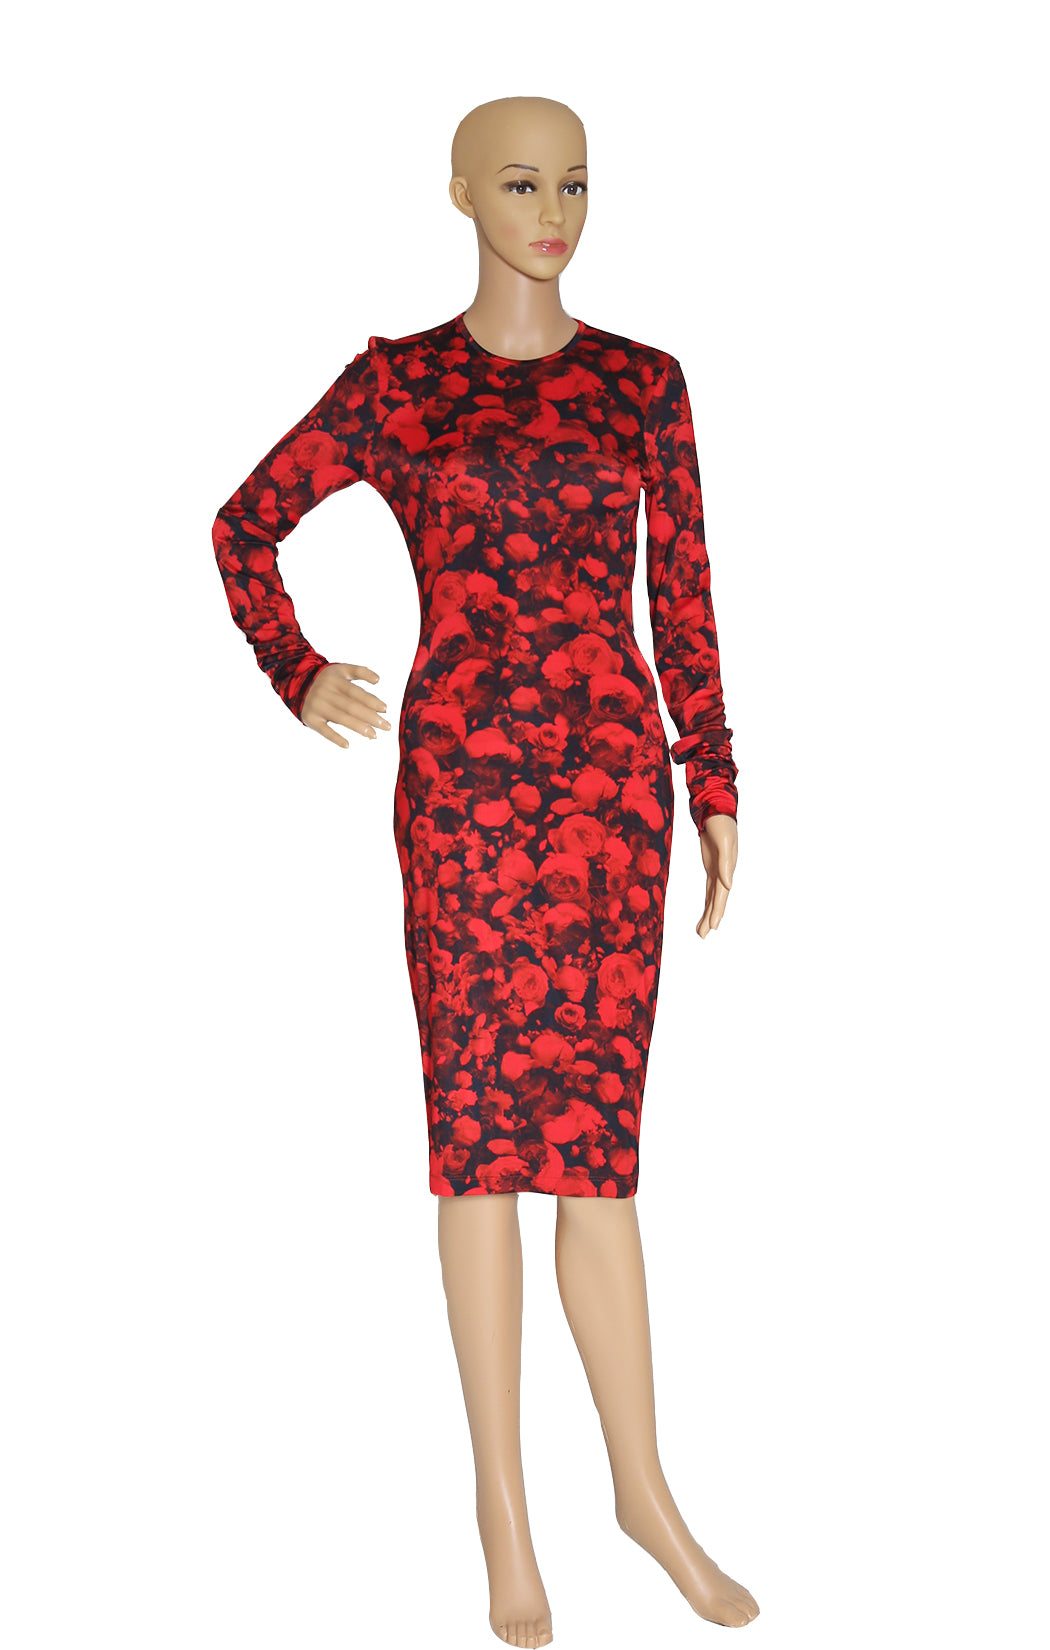 Front view of GIVENCHY Rose Print Dress Size: FR 36 (US 4)